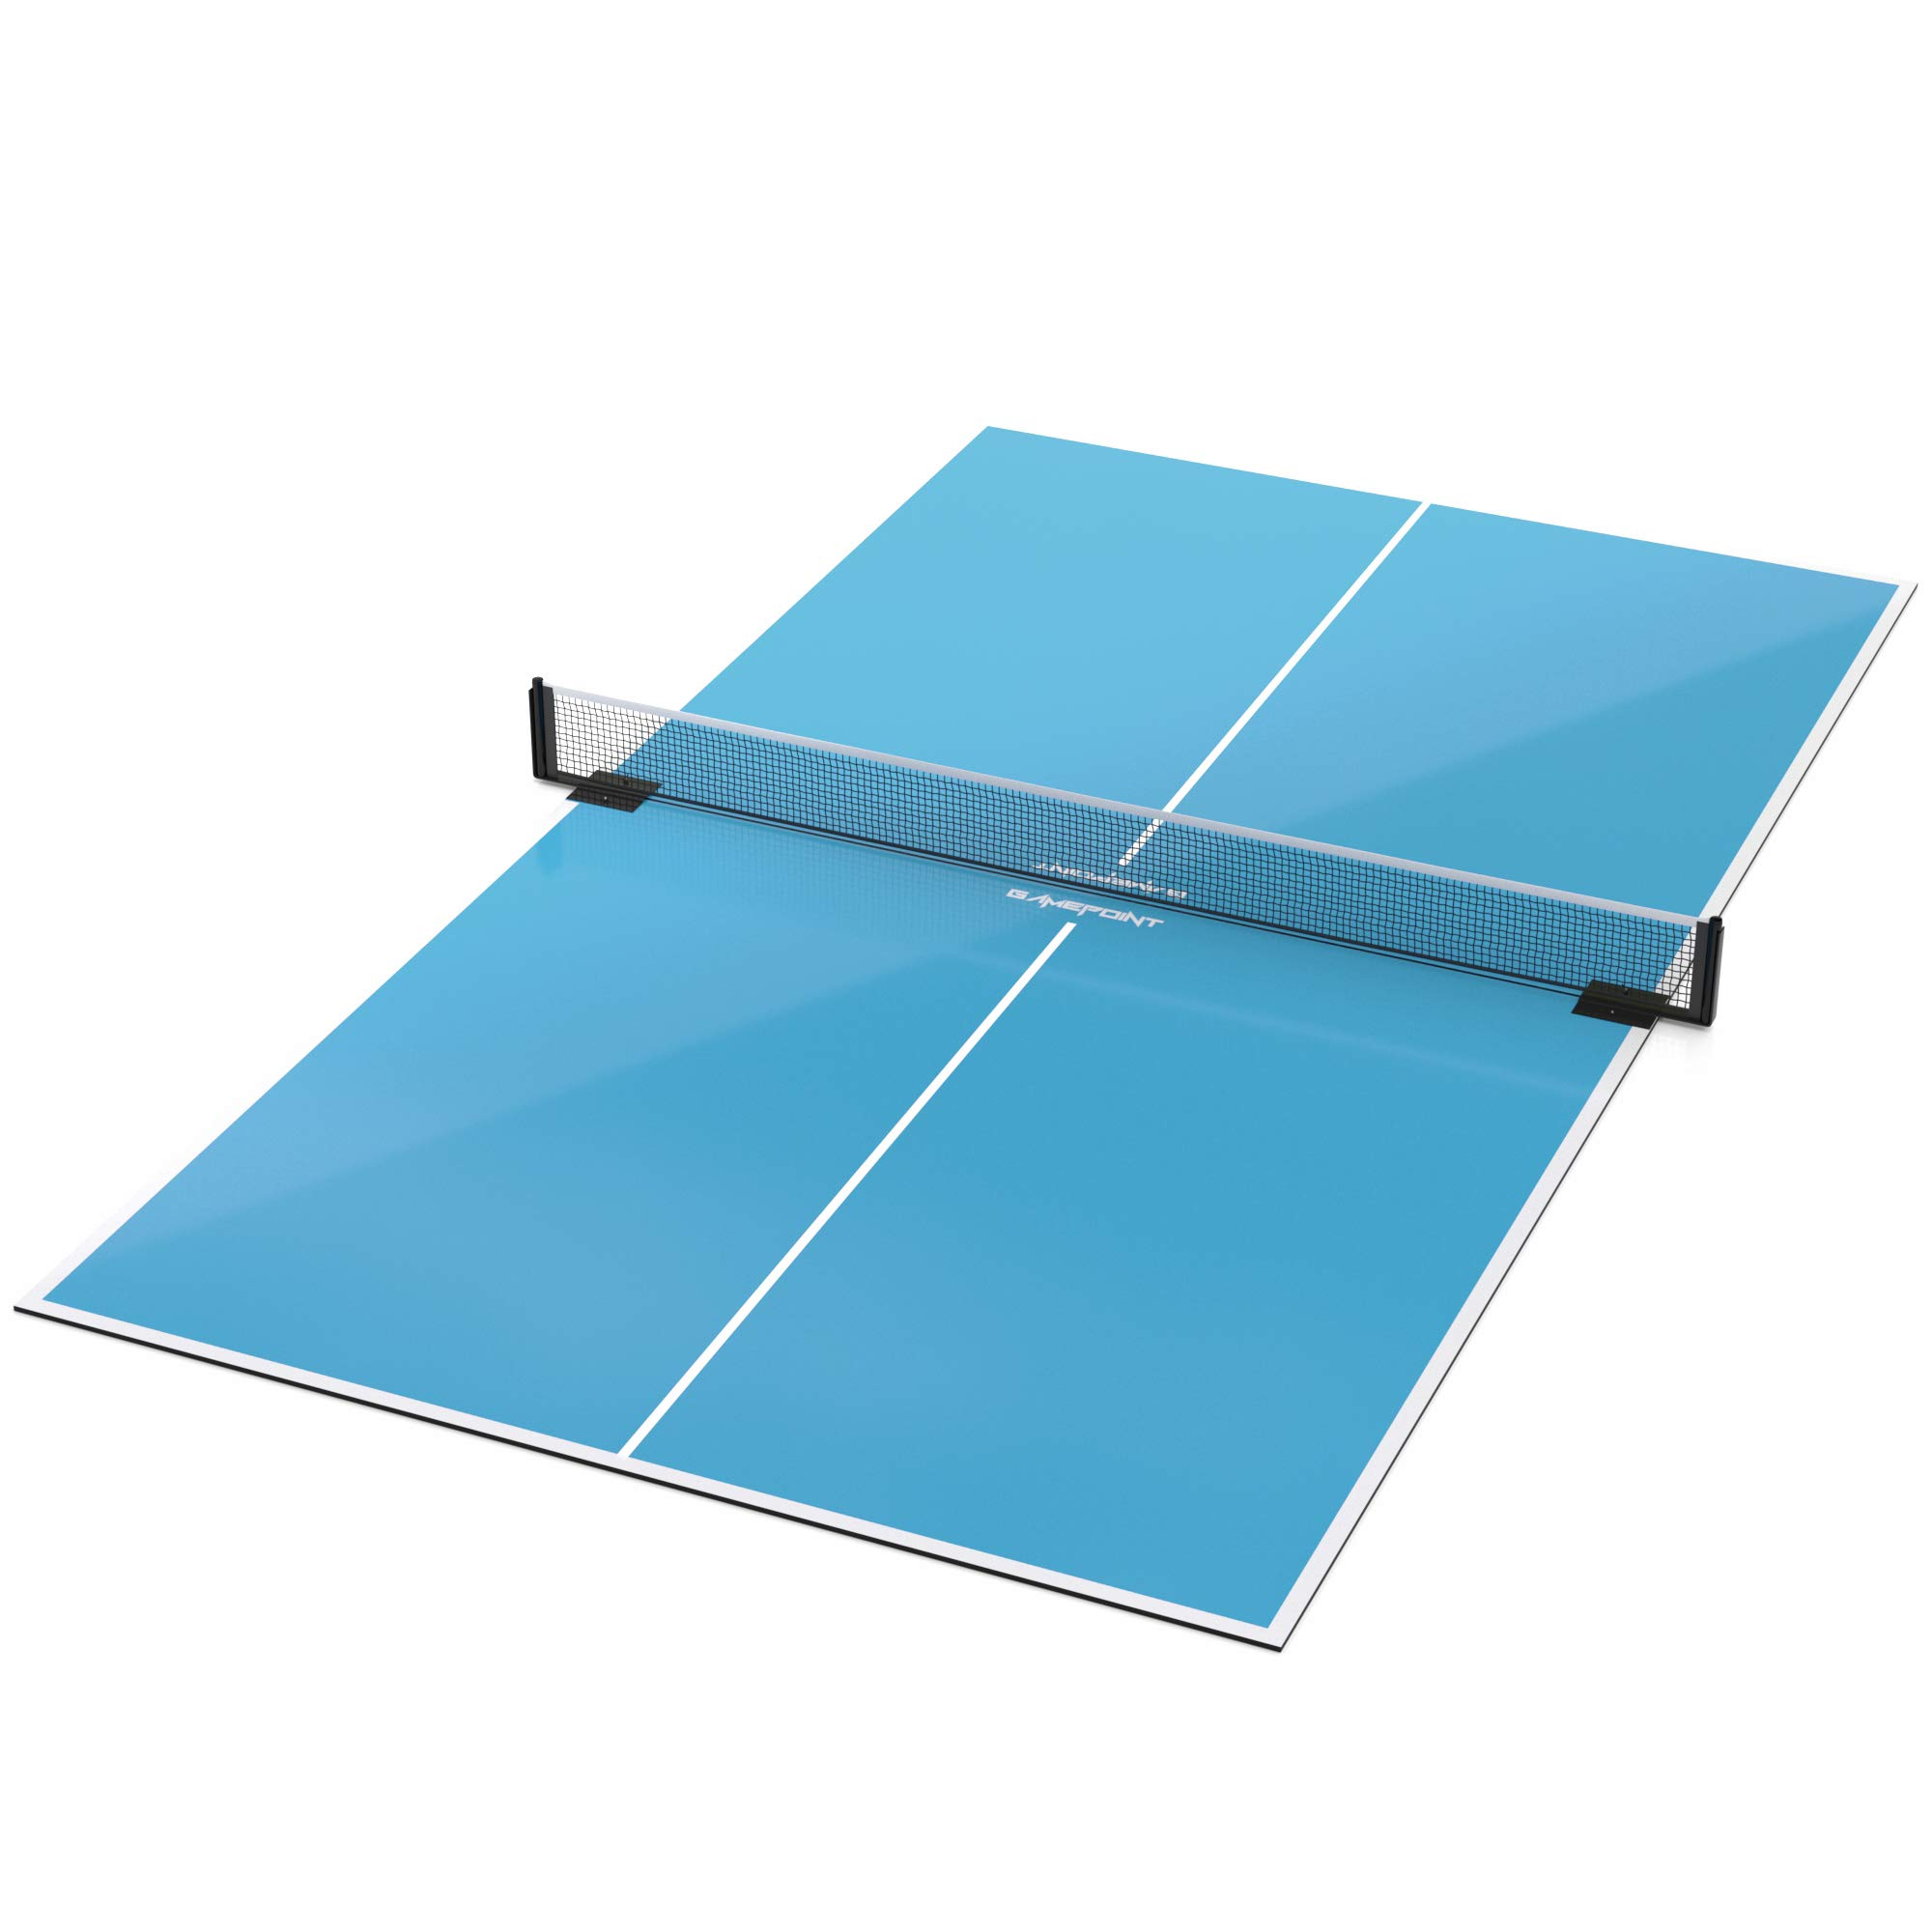 GamePoint Tables Table Tennis Conversion Top - Includes Net and Foam Backing for Protection by GamePoint Tables